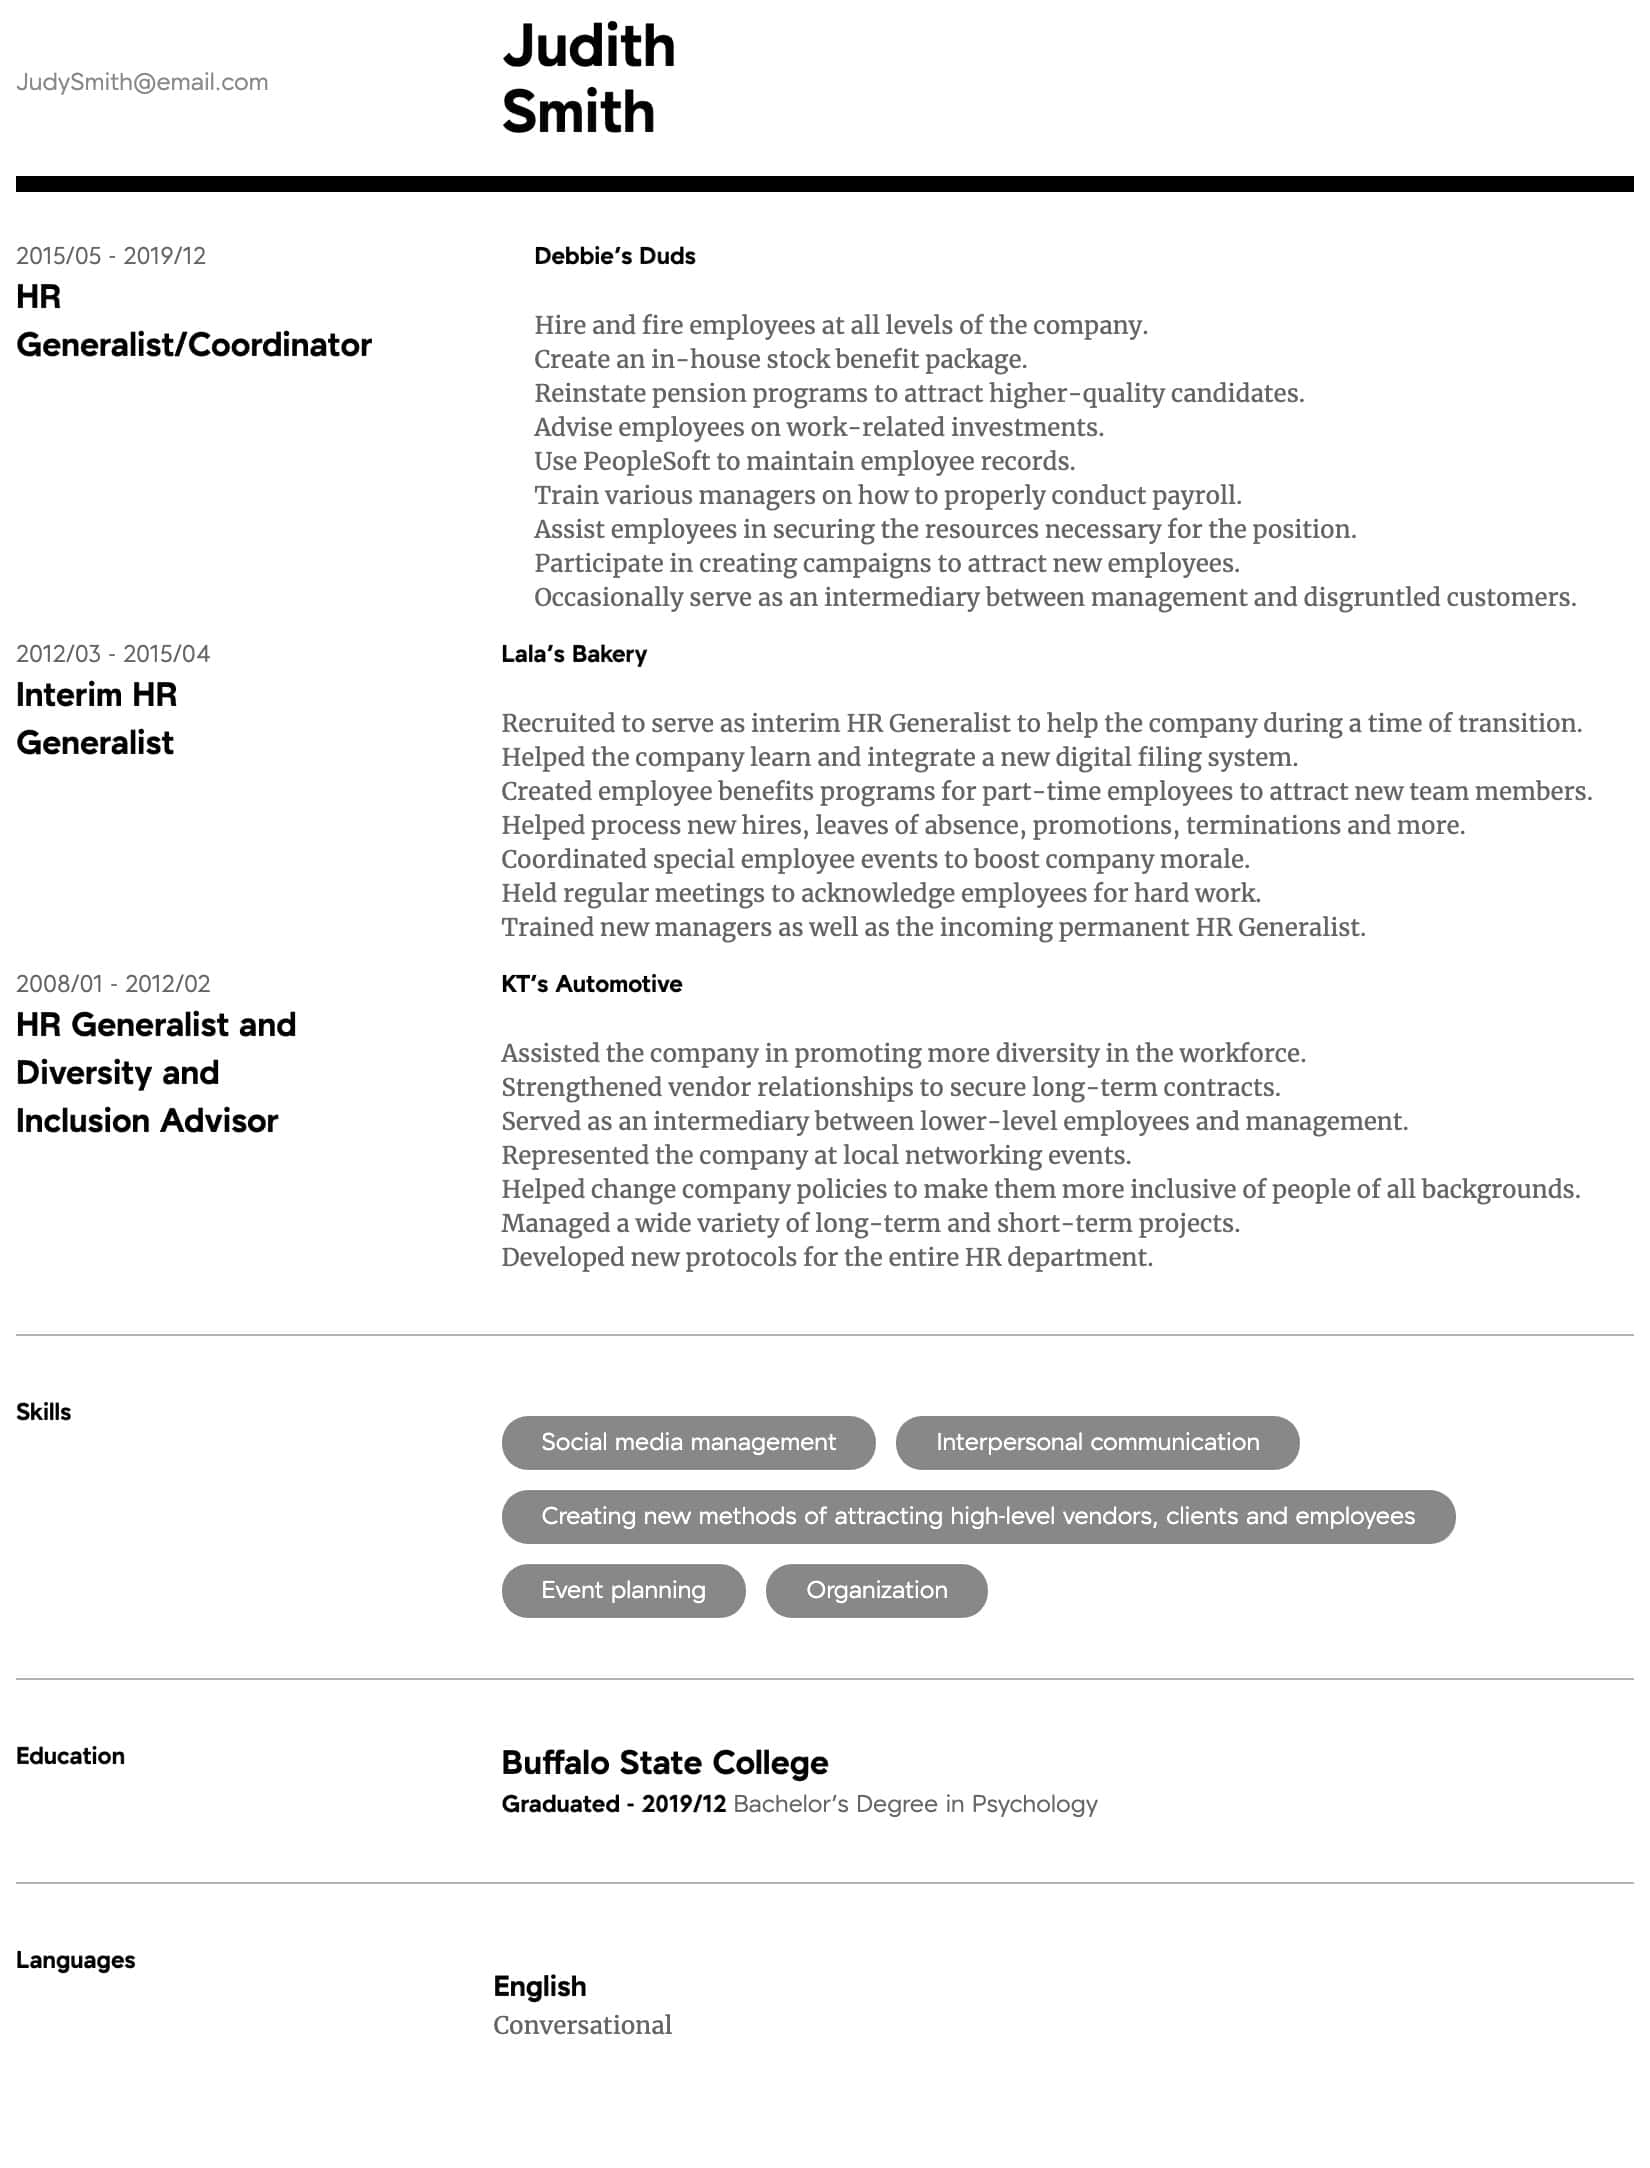 hr generalist resume samples all experience levels diversity manager intermediate design Resume Diversity Manager Resume